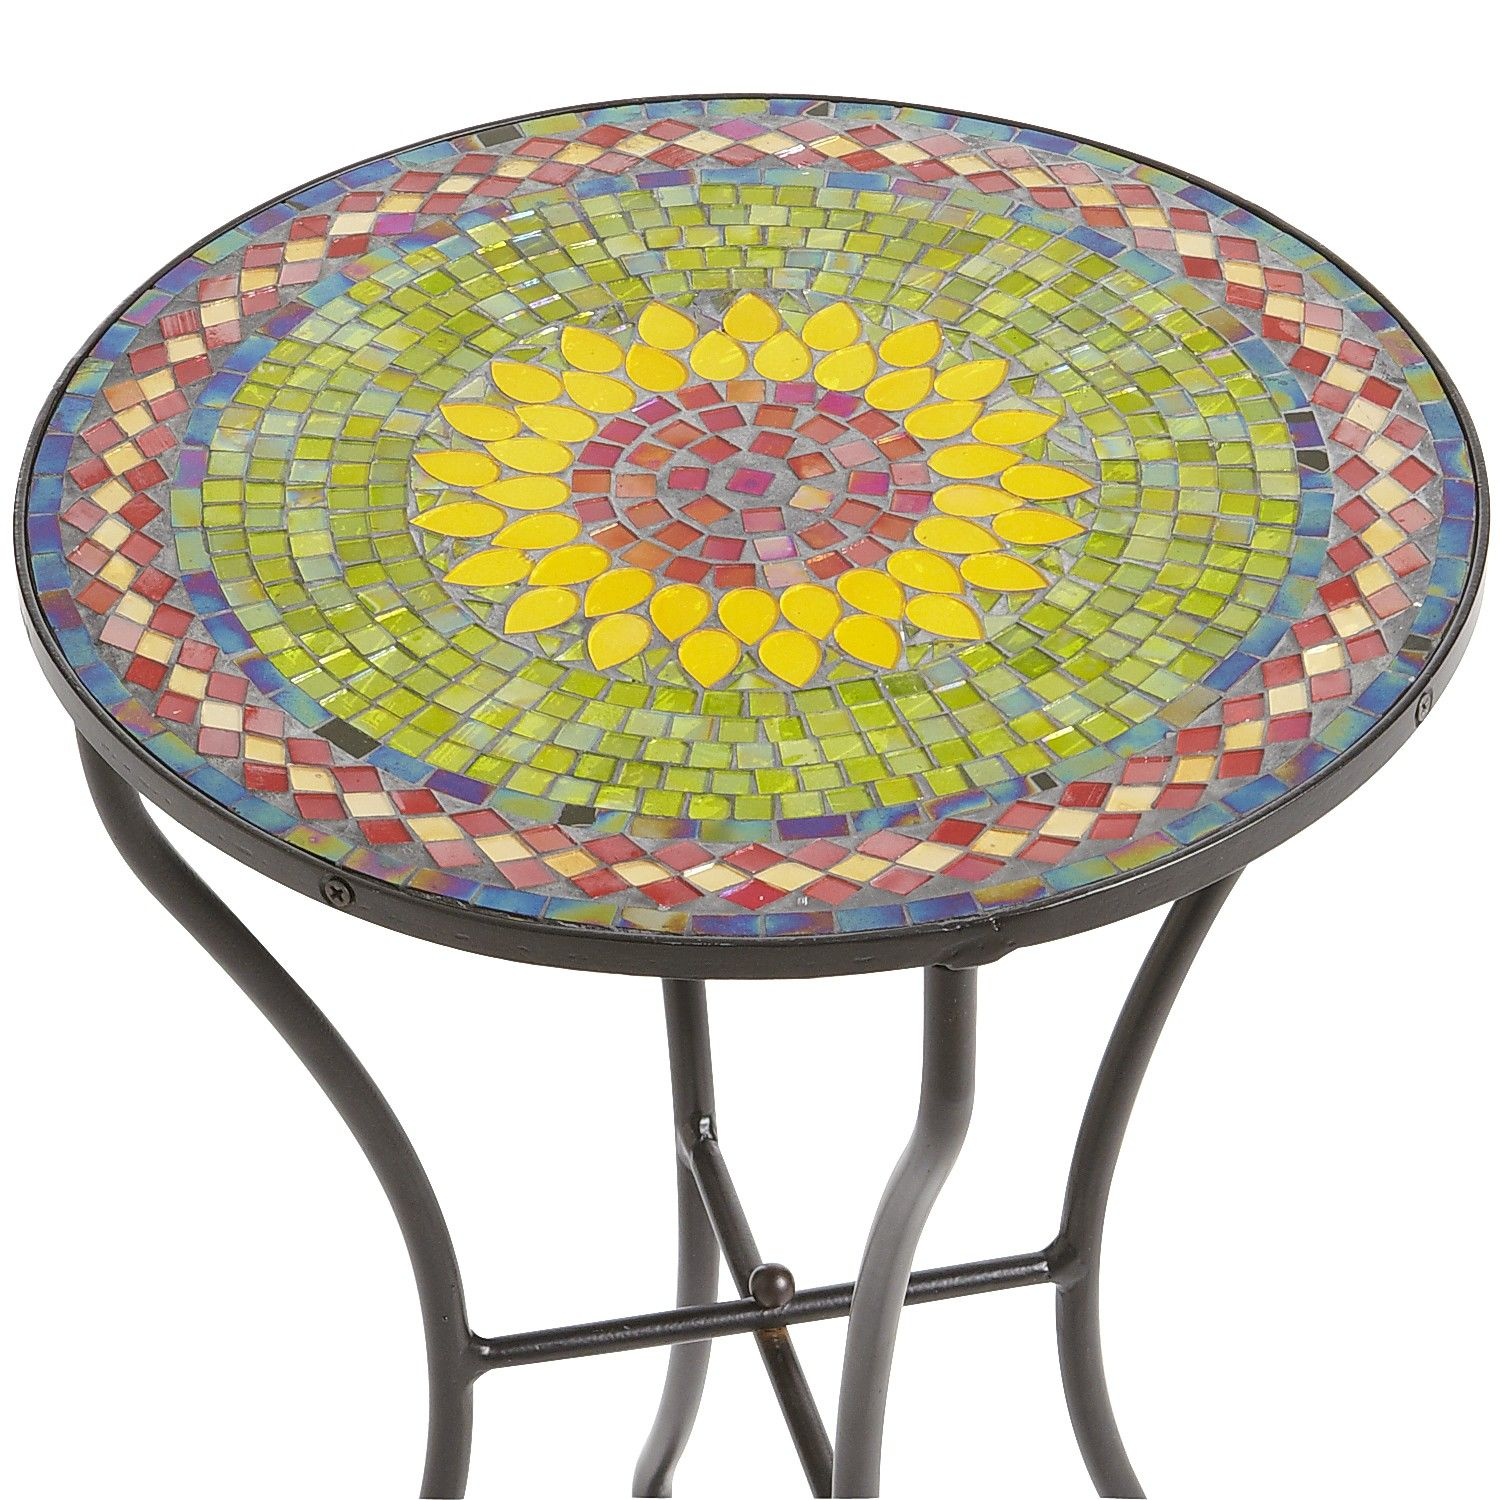 sunflower mosaic accent table pier imports bombay tables kohls narrow nesting side ashley furniture end with drawers large silver lamps gray linens acrylic coffee tray cordless